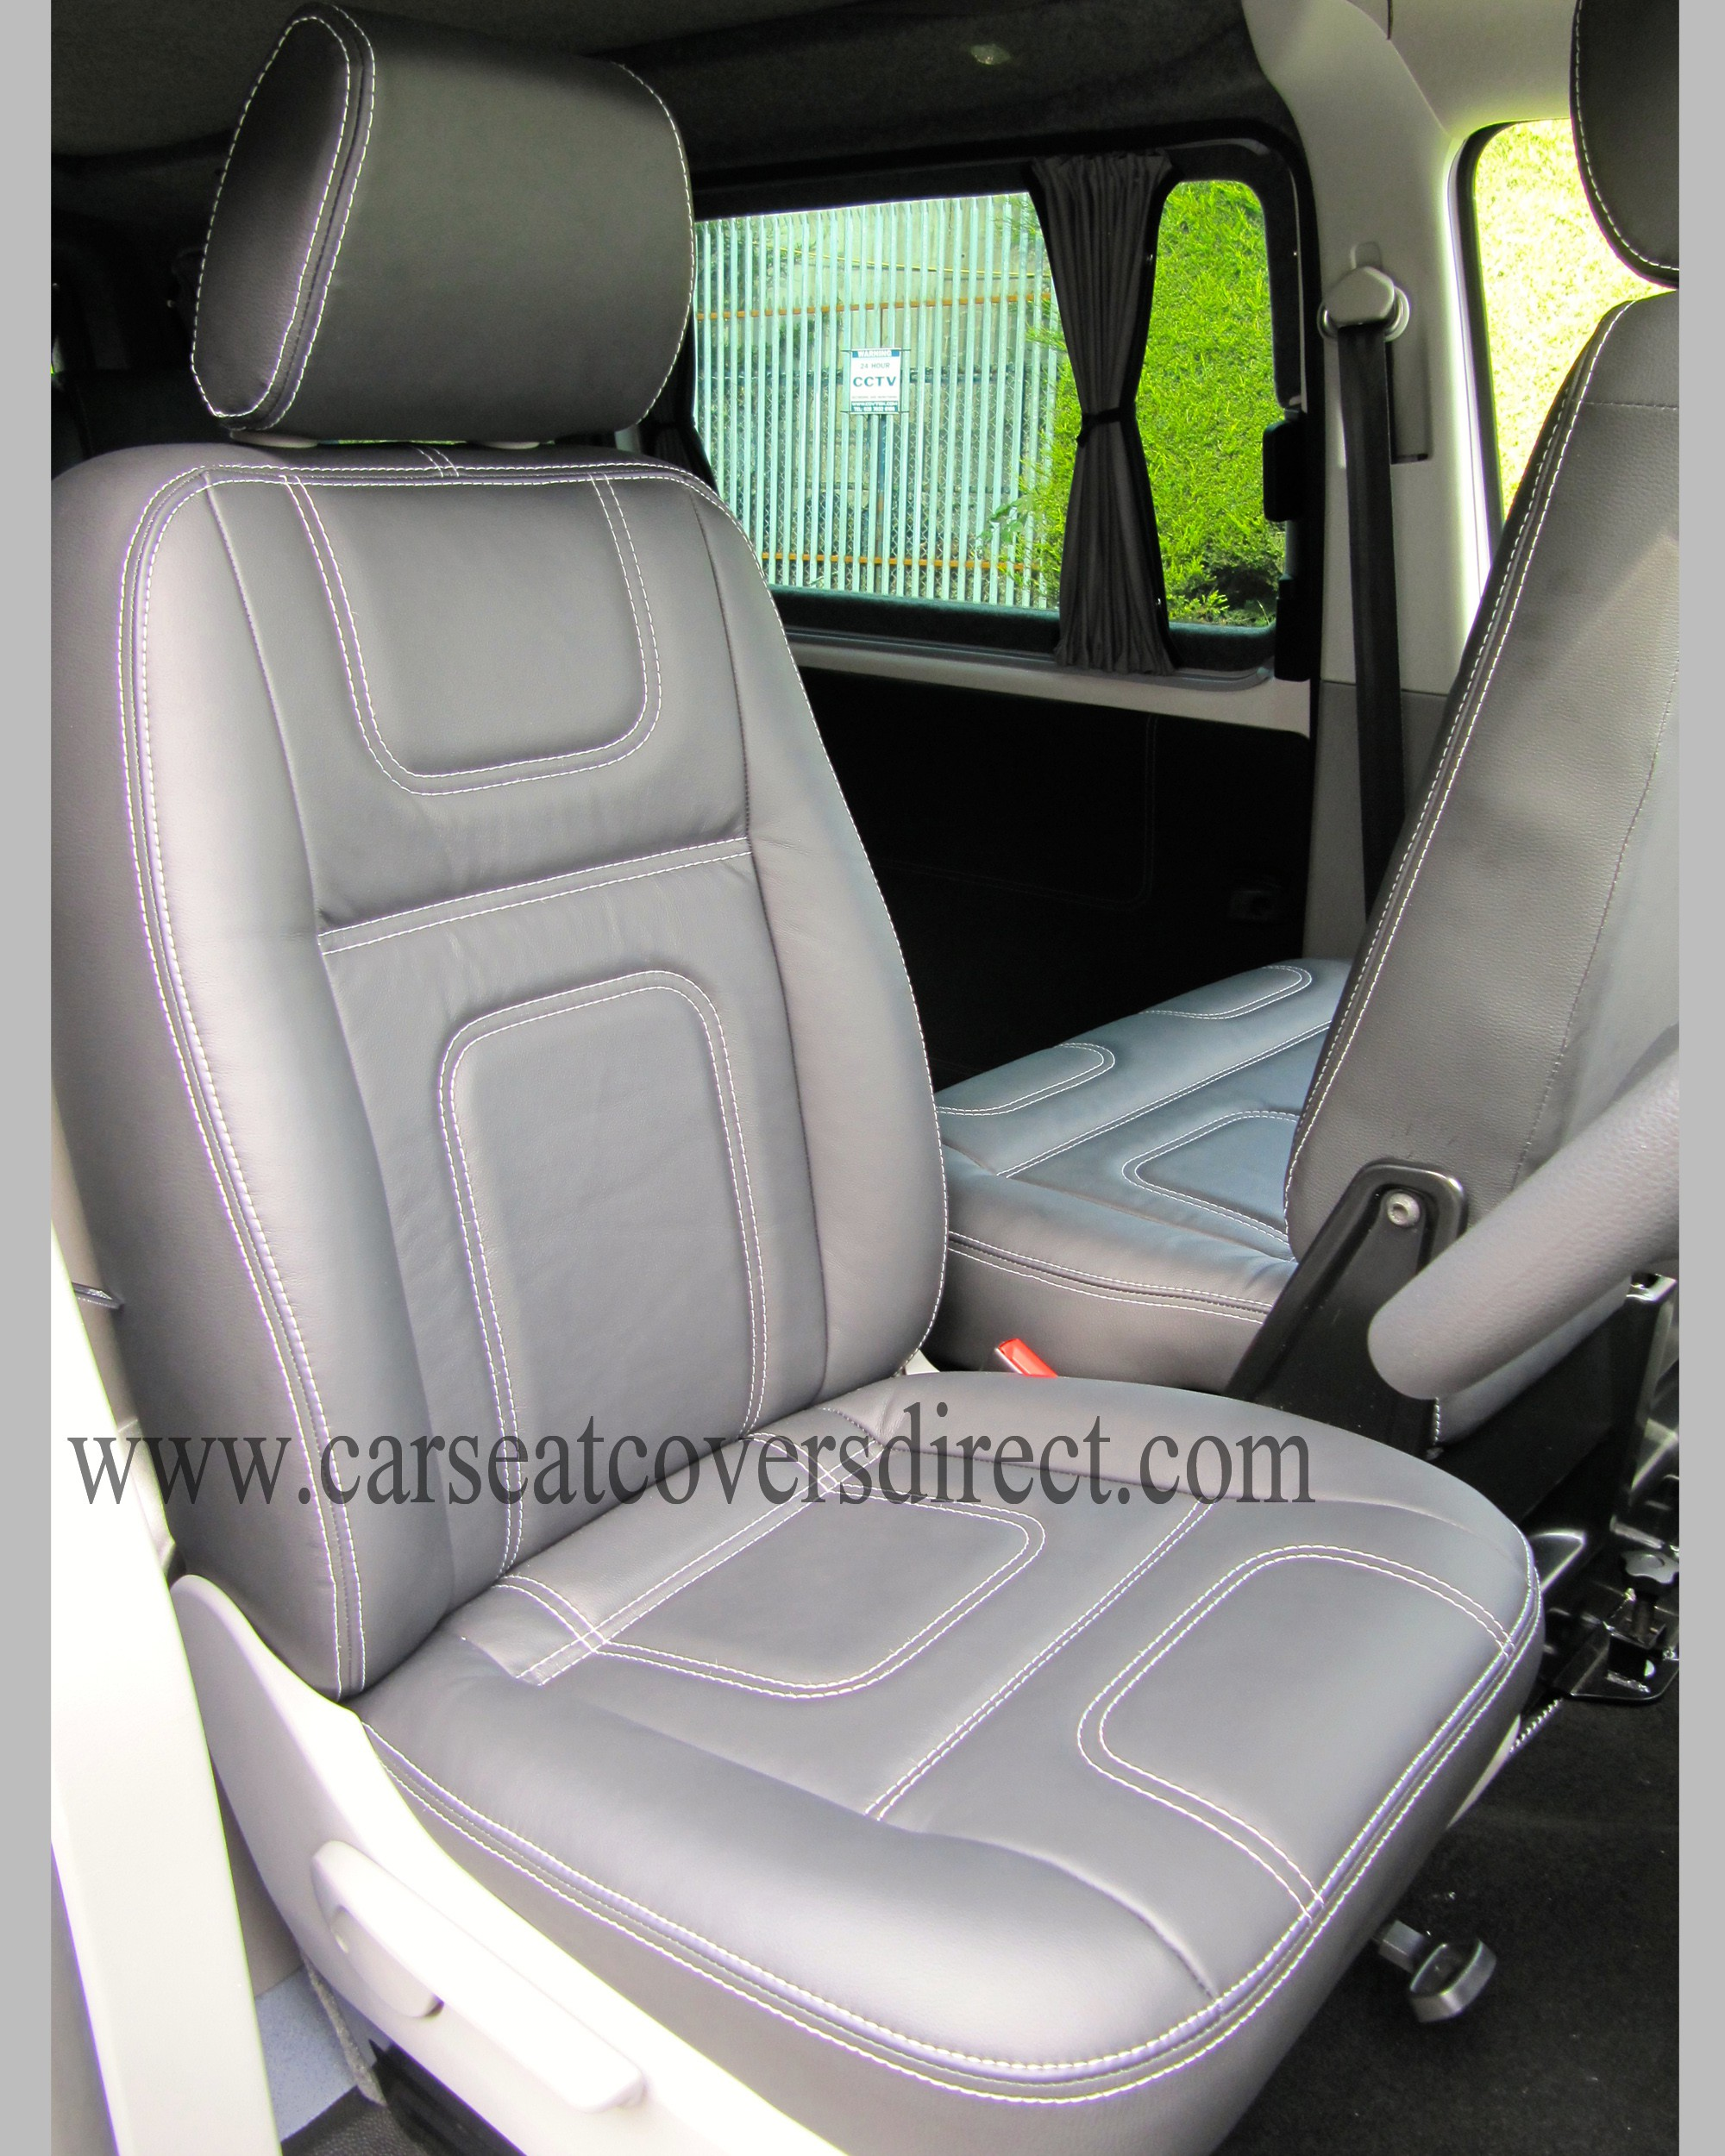 VOLKSWAGEN VW TRANSPORTER T5 AUTOHAUS LEATHER RETRIM